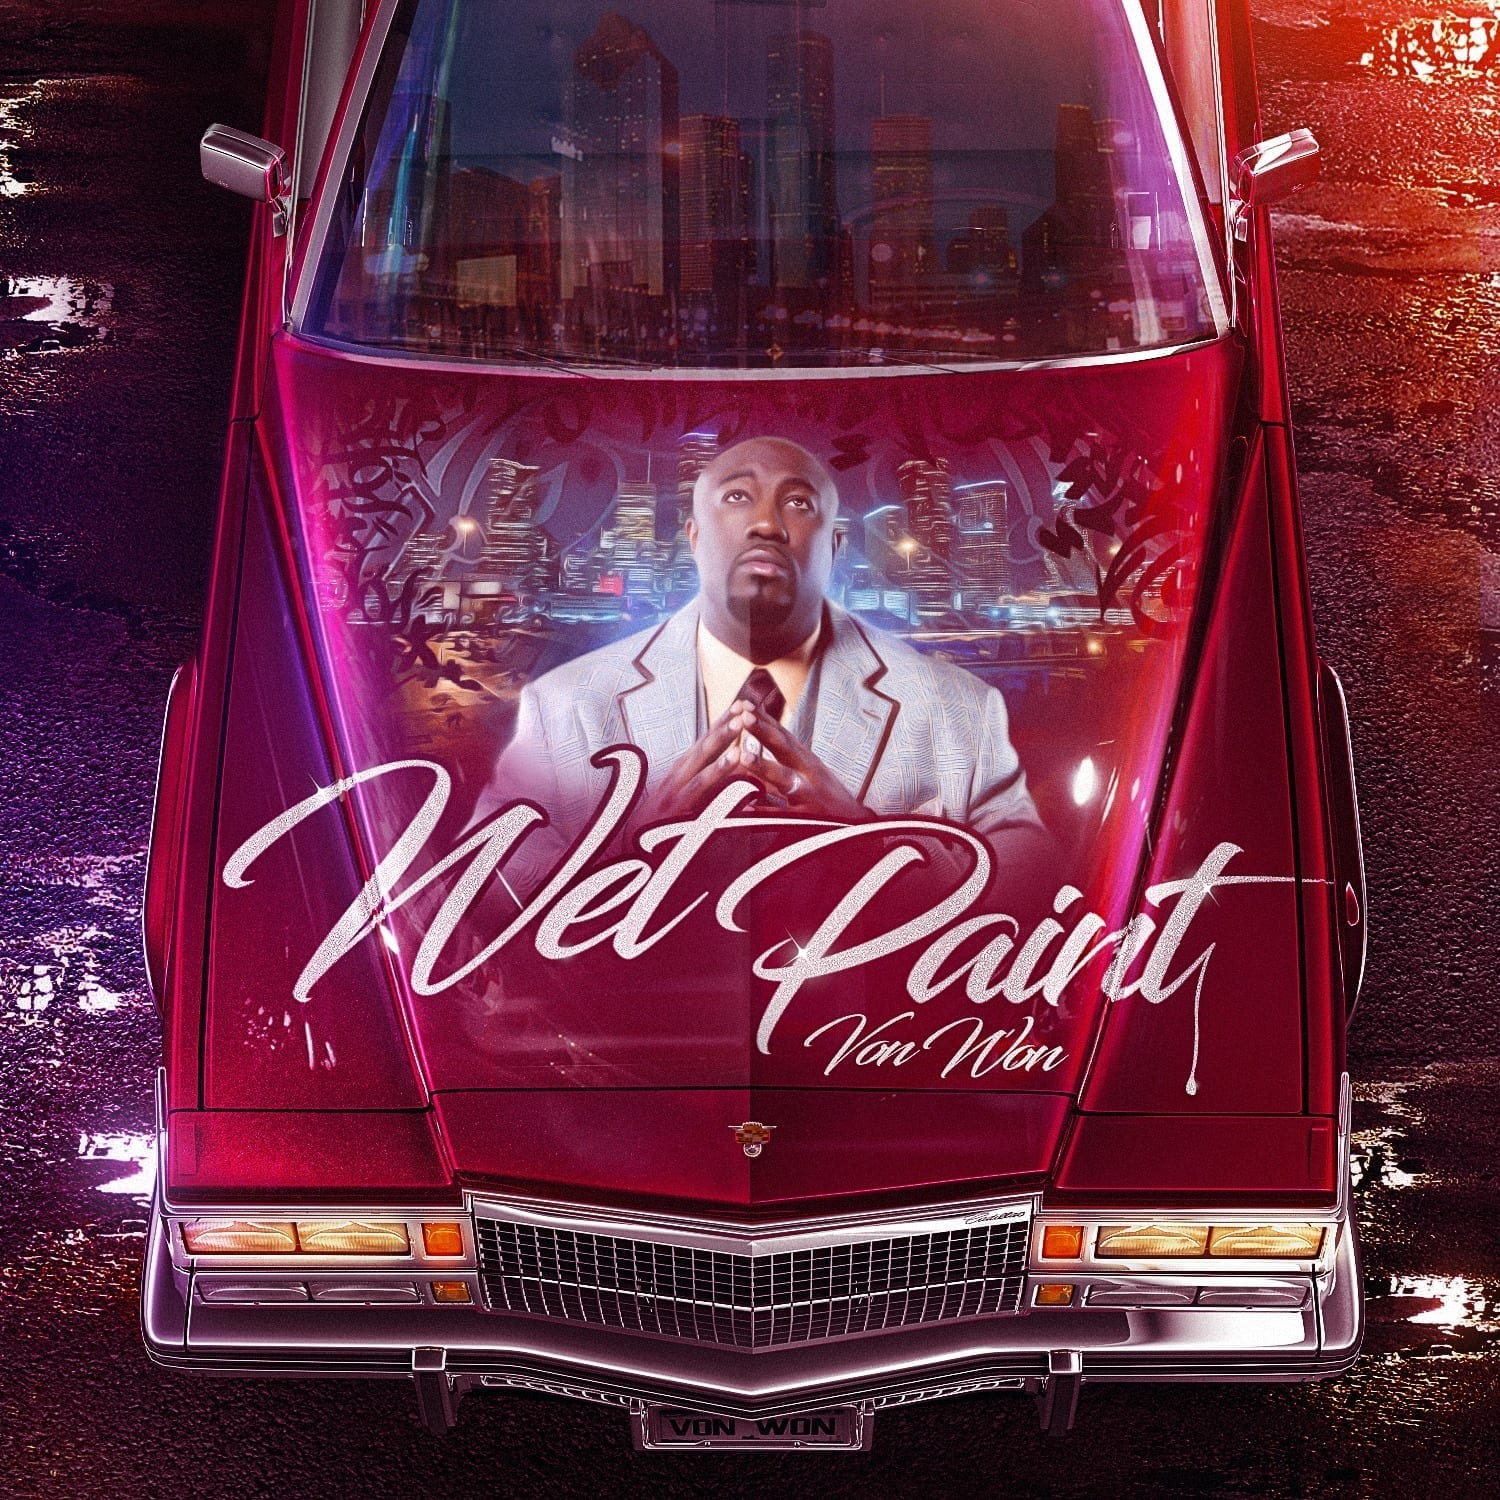 VON WON Drop's New Free Mixtape (WET PAINT) Vol.1